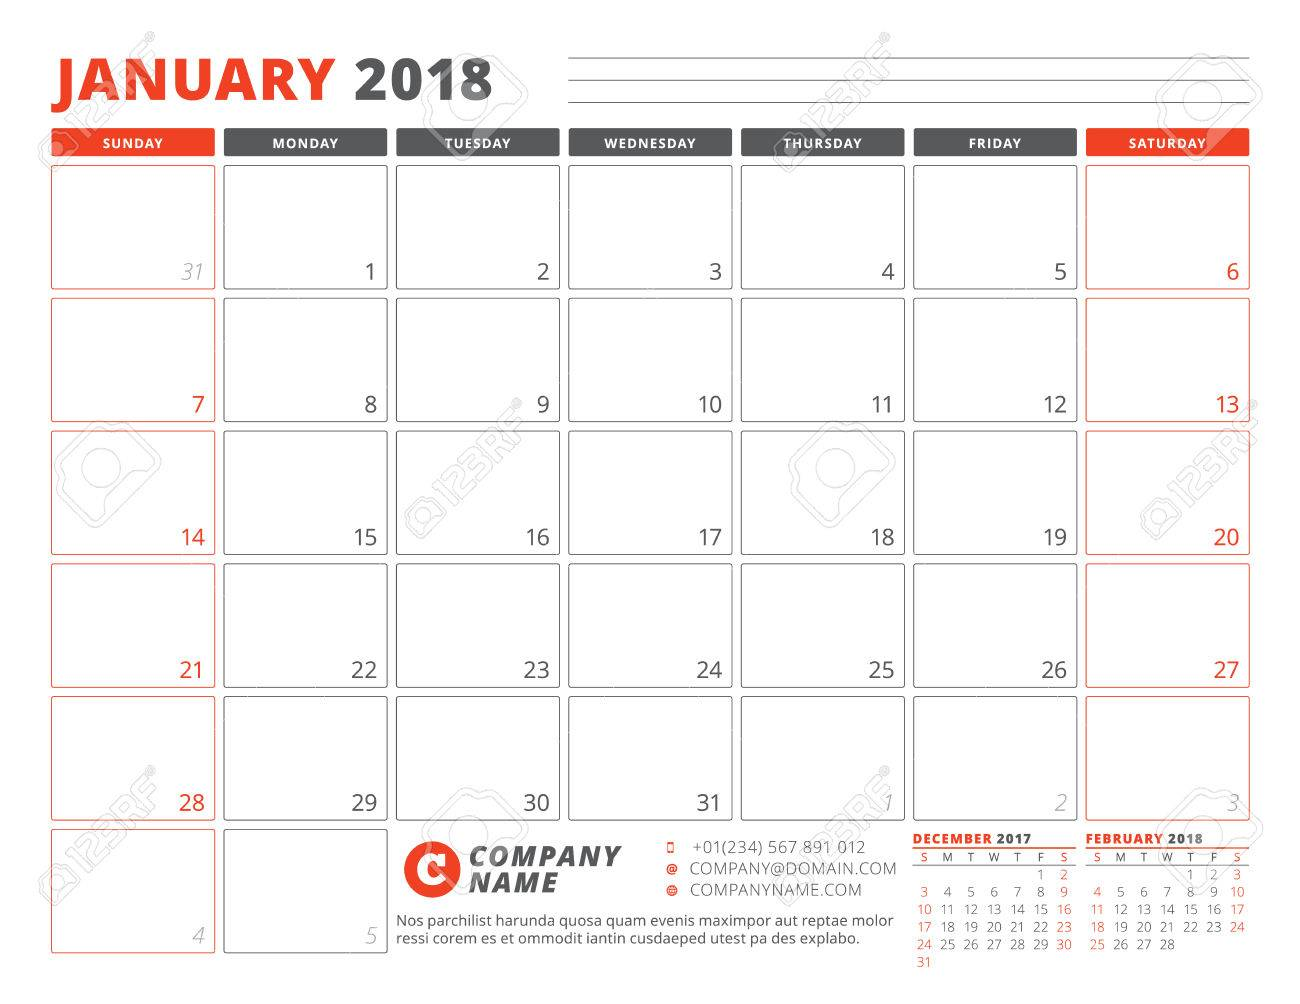 calendar planner template for january 2018 week starts on sunday with 3 months on the